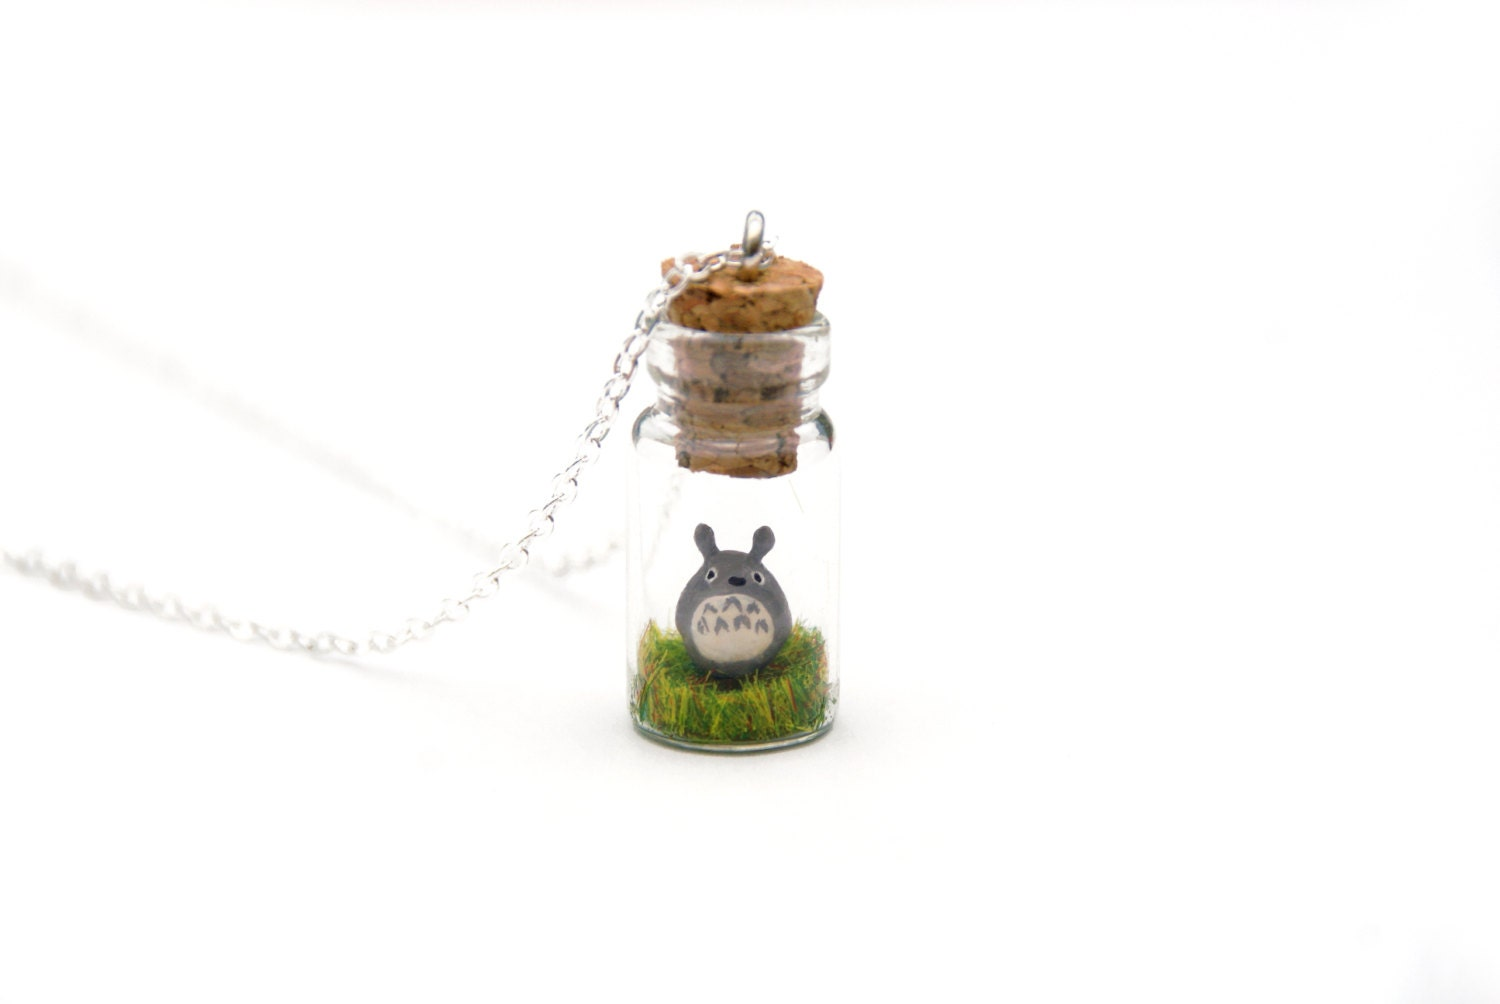 https://www.etsy.com/uk/listing/203709297/totoro-jar-necklace-bottle-anime-gift?